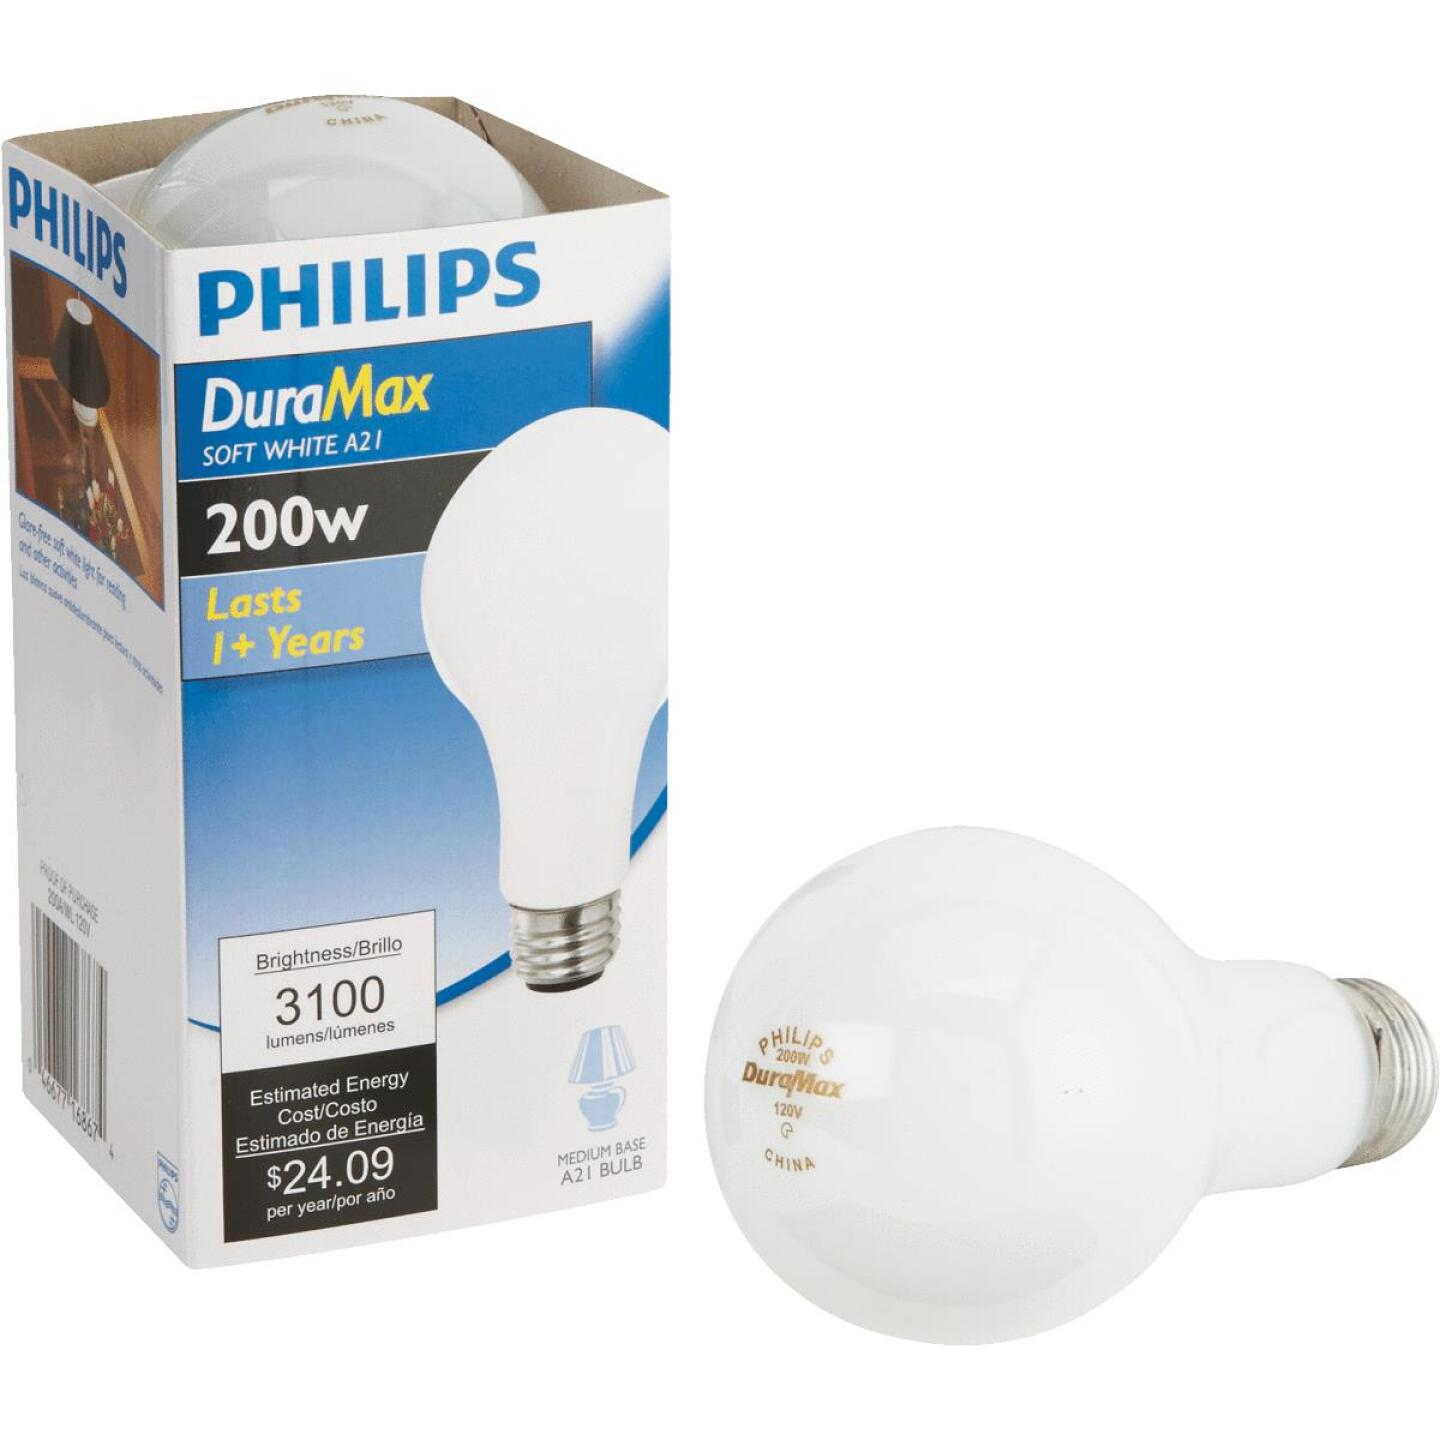 Philips DuraMax 200W Frosted Soft White Medium A21 Incandescent Light Bulb Image 1